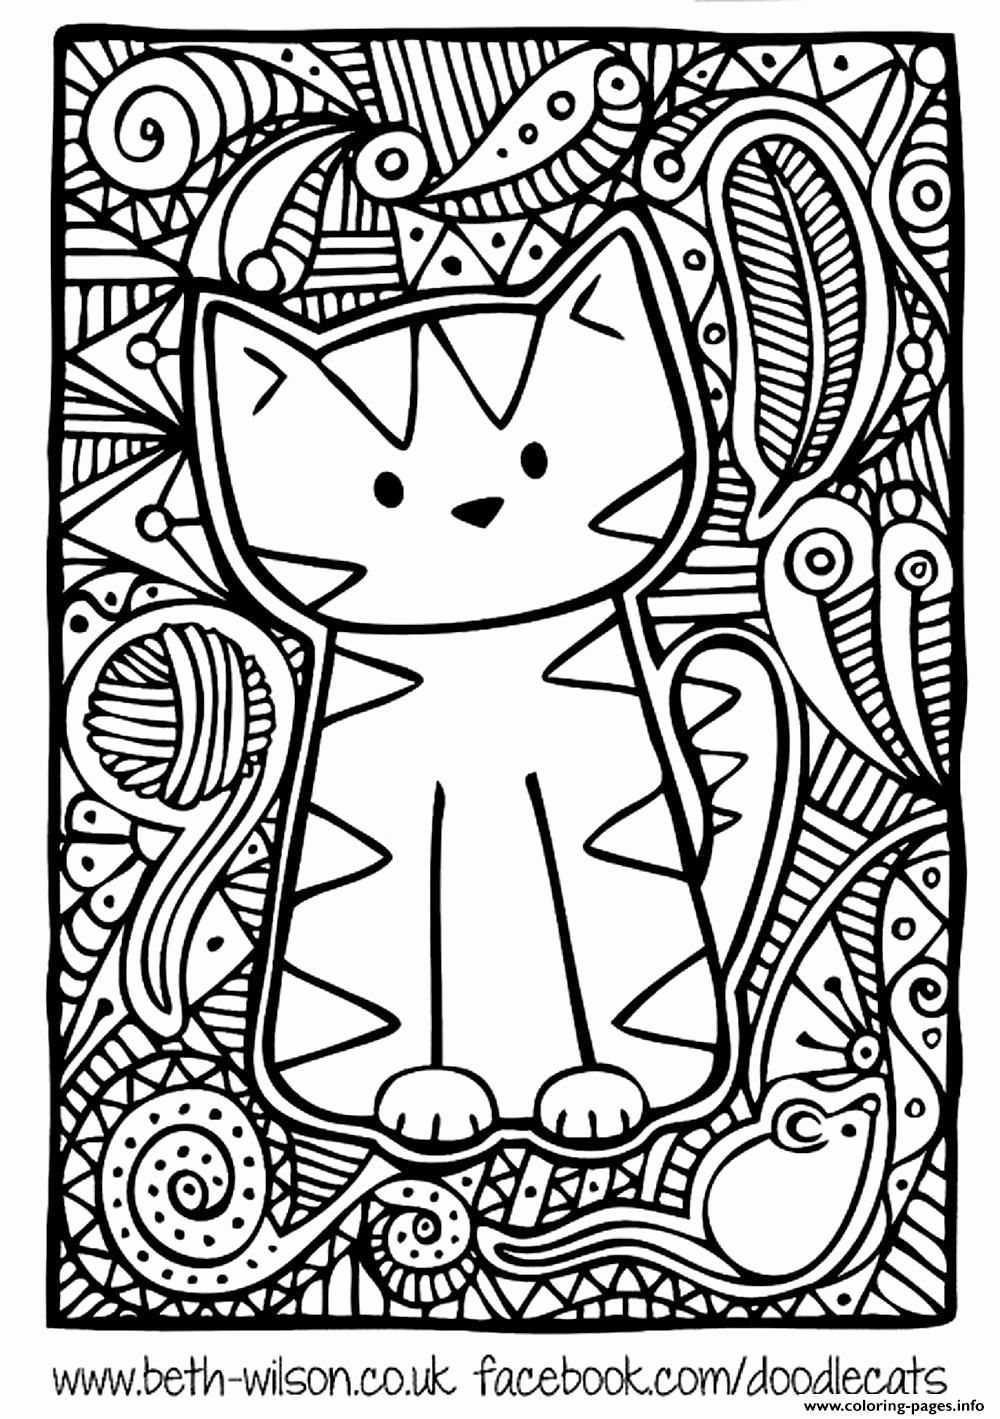 Printable Coloring Pages For Kids Cute Cat In 2020 Cute Coloring Pages Cat Coloring Page Animal Coloring Pages